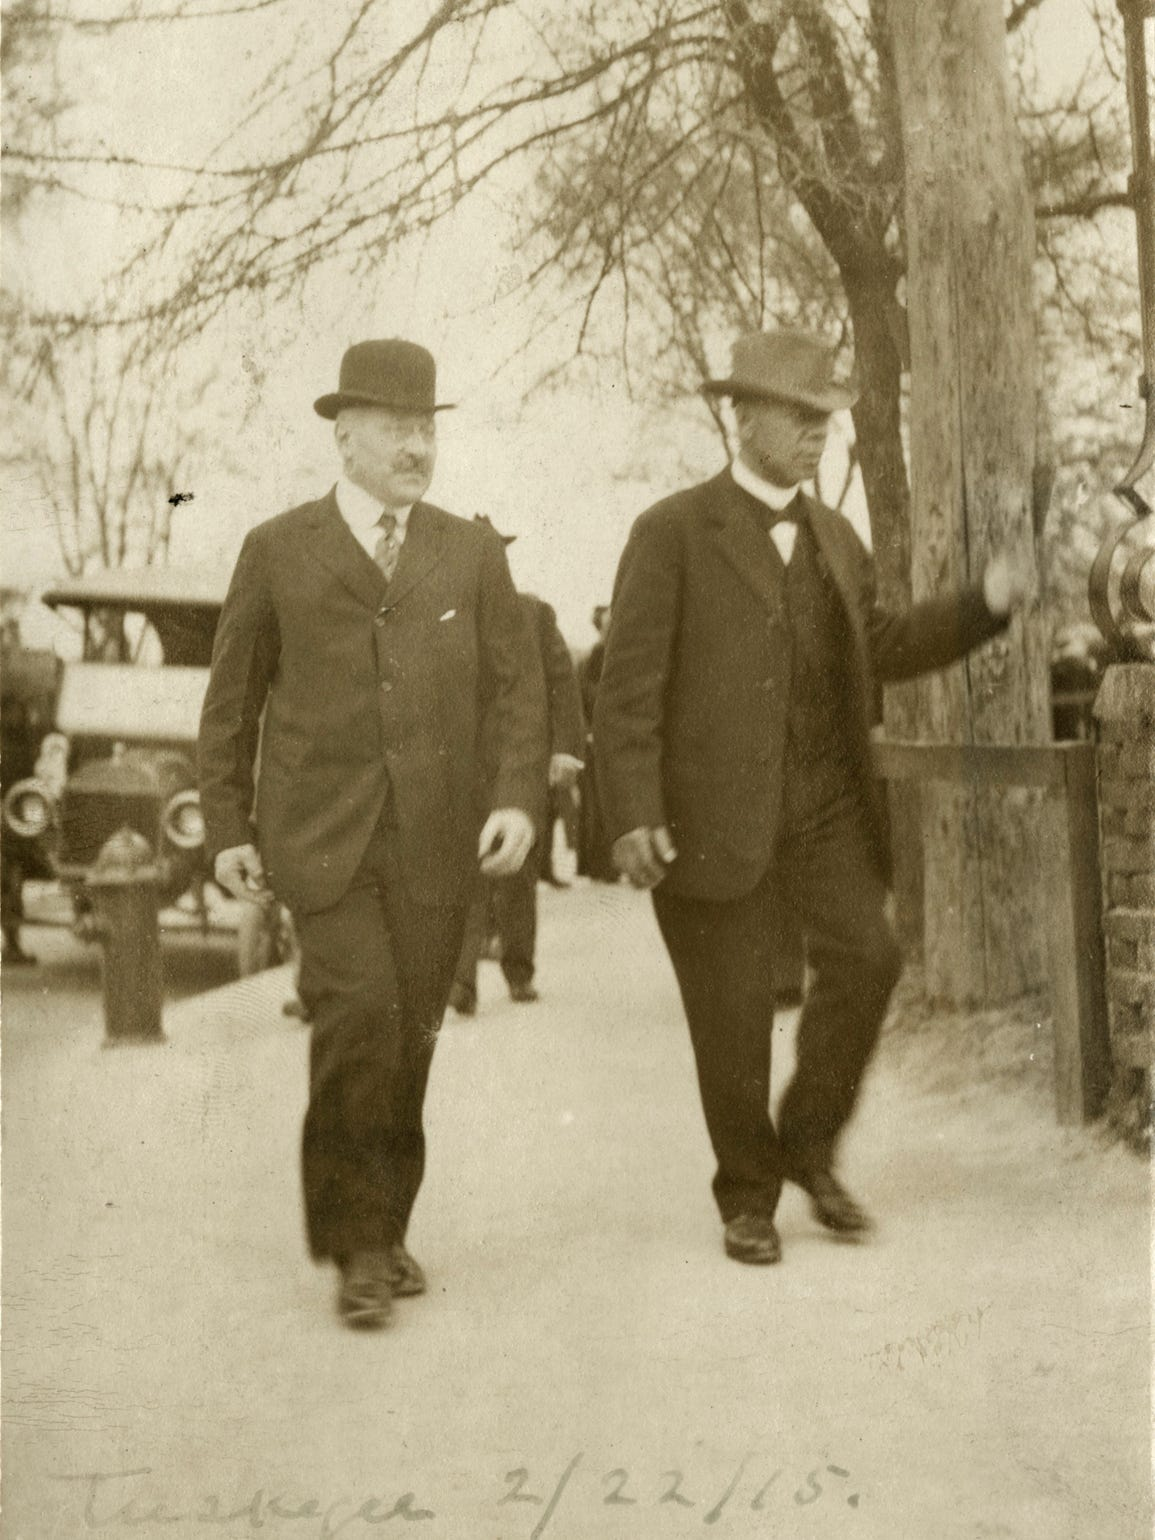 Julius Rosenwald and Booker T. Washington, Tuskegee